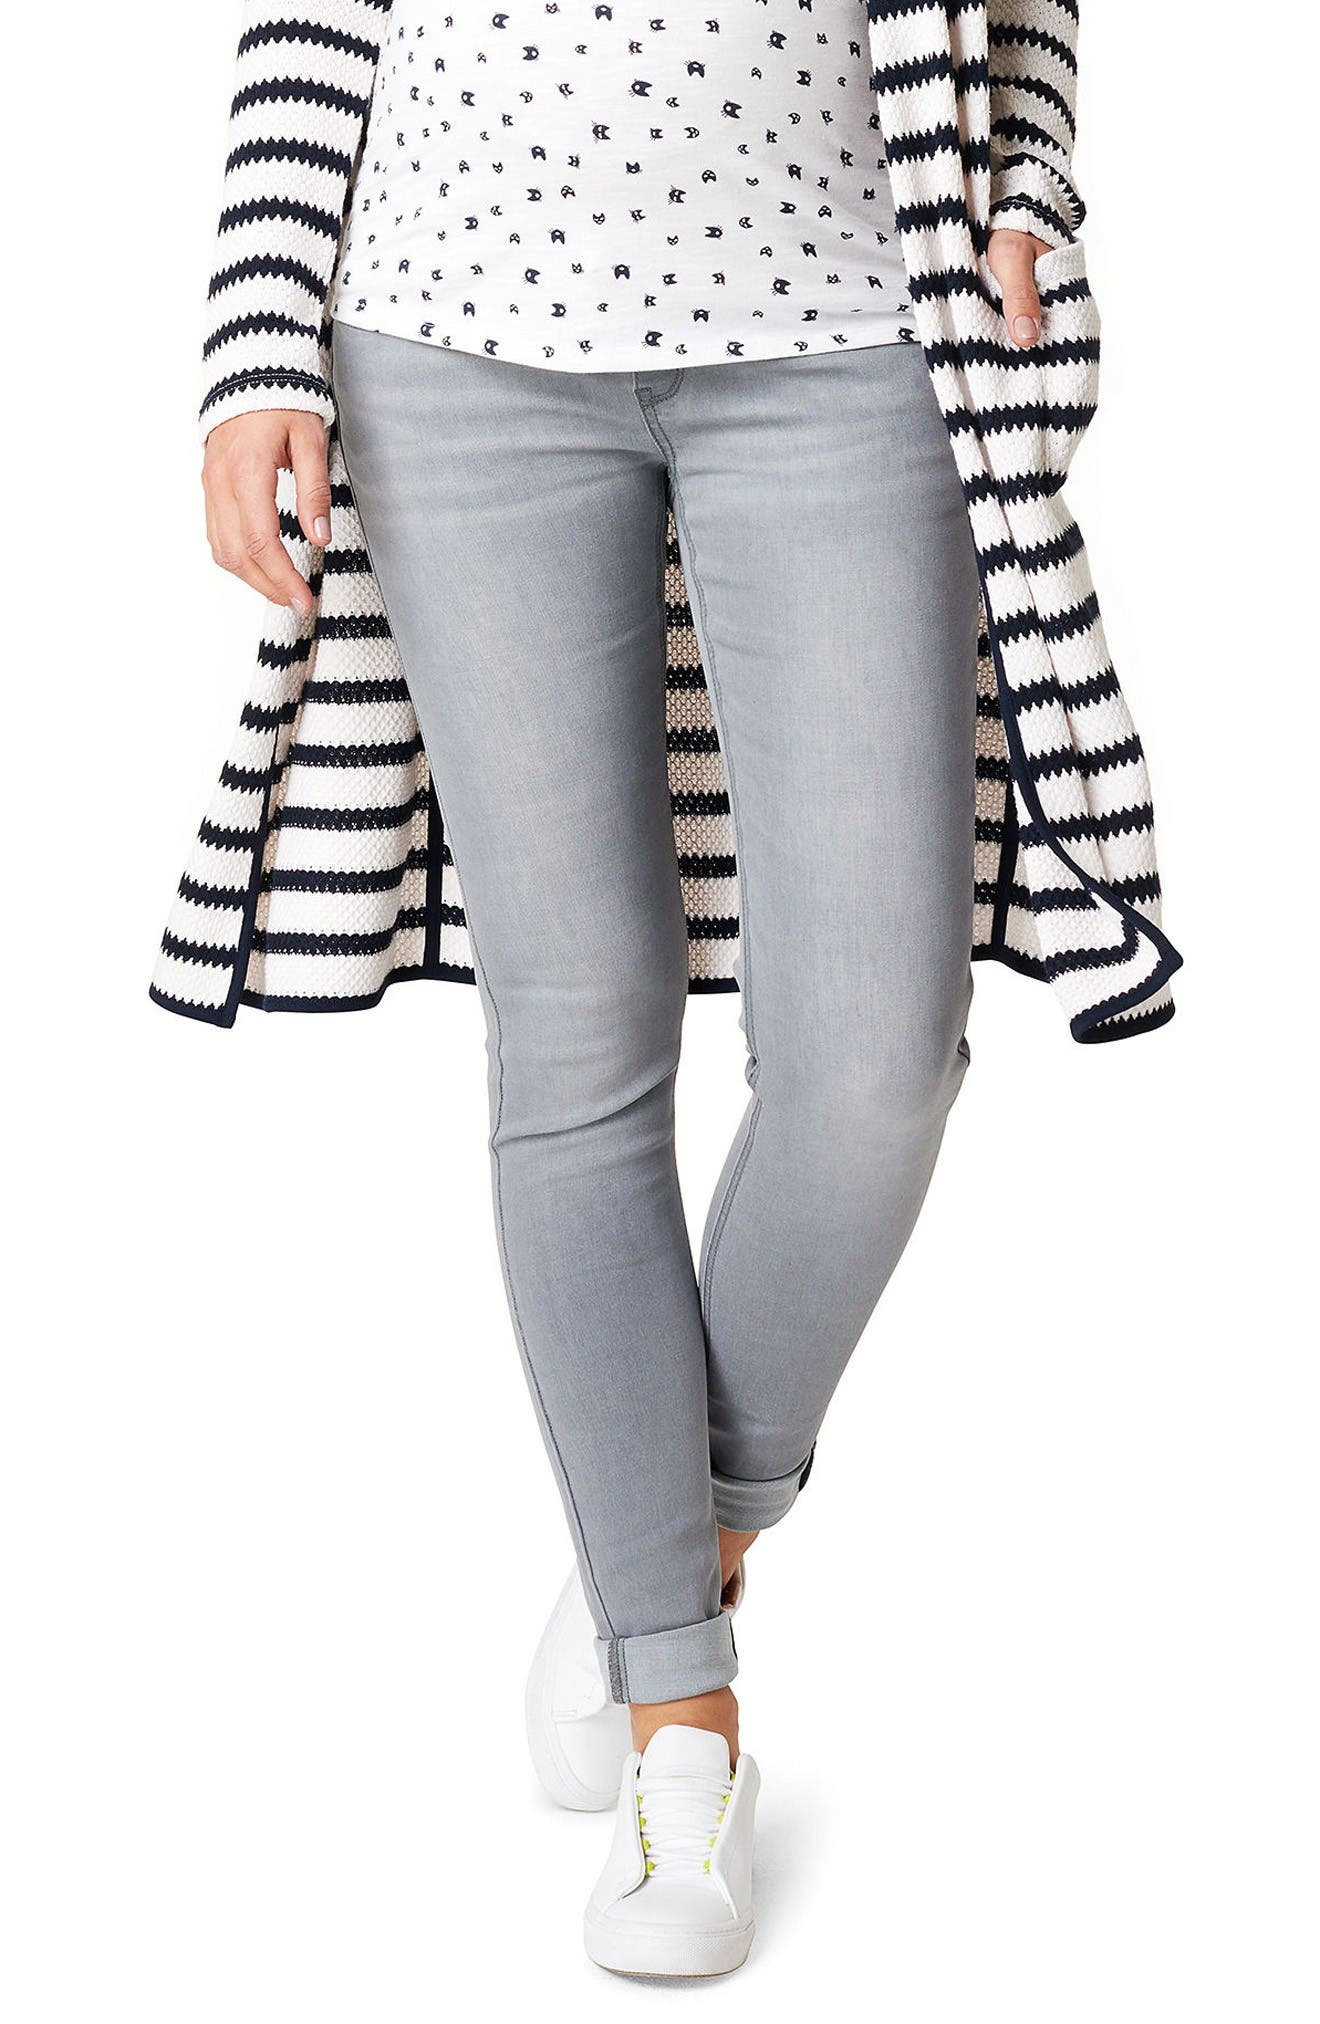 Alternate Image 1 Selected - Noppies Iva Skinny Maternity Jeans